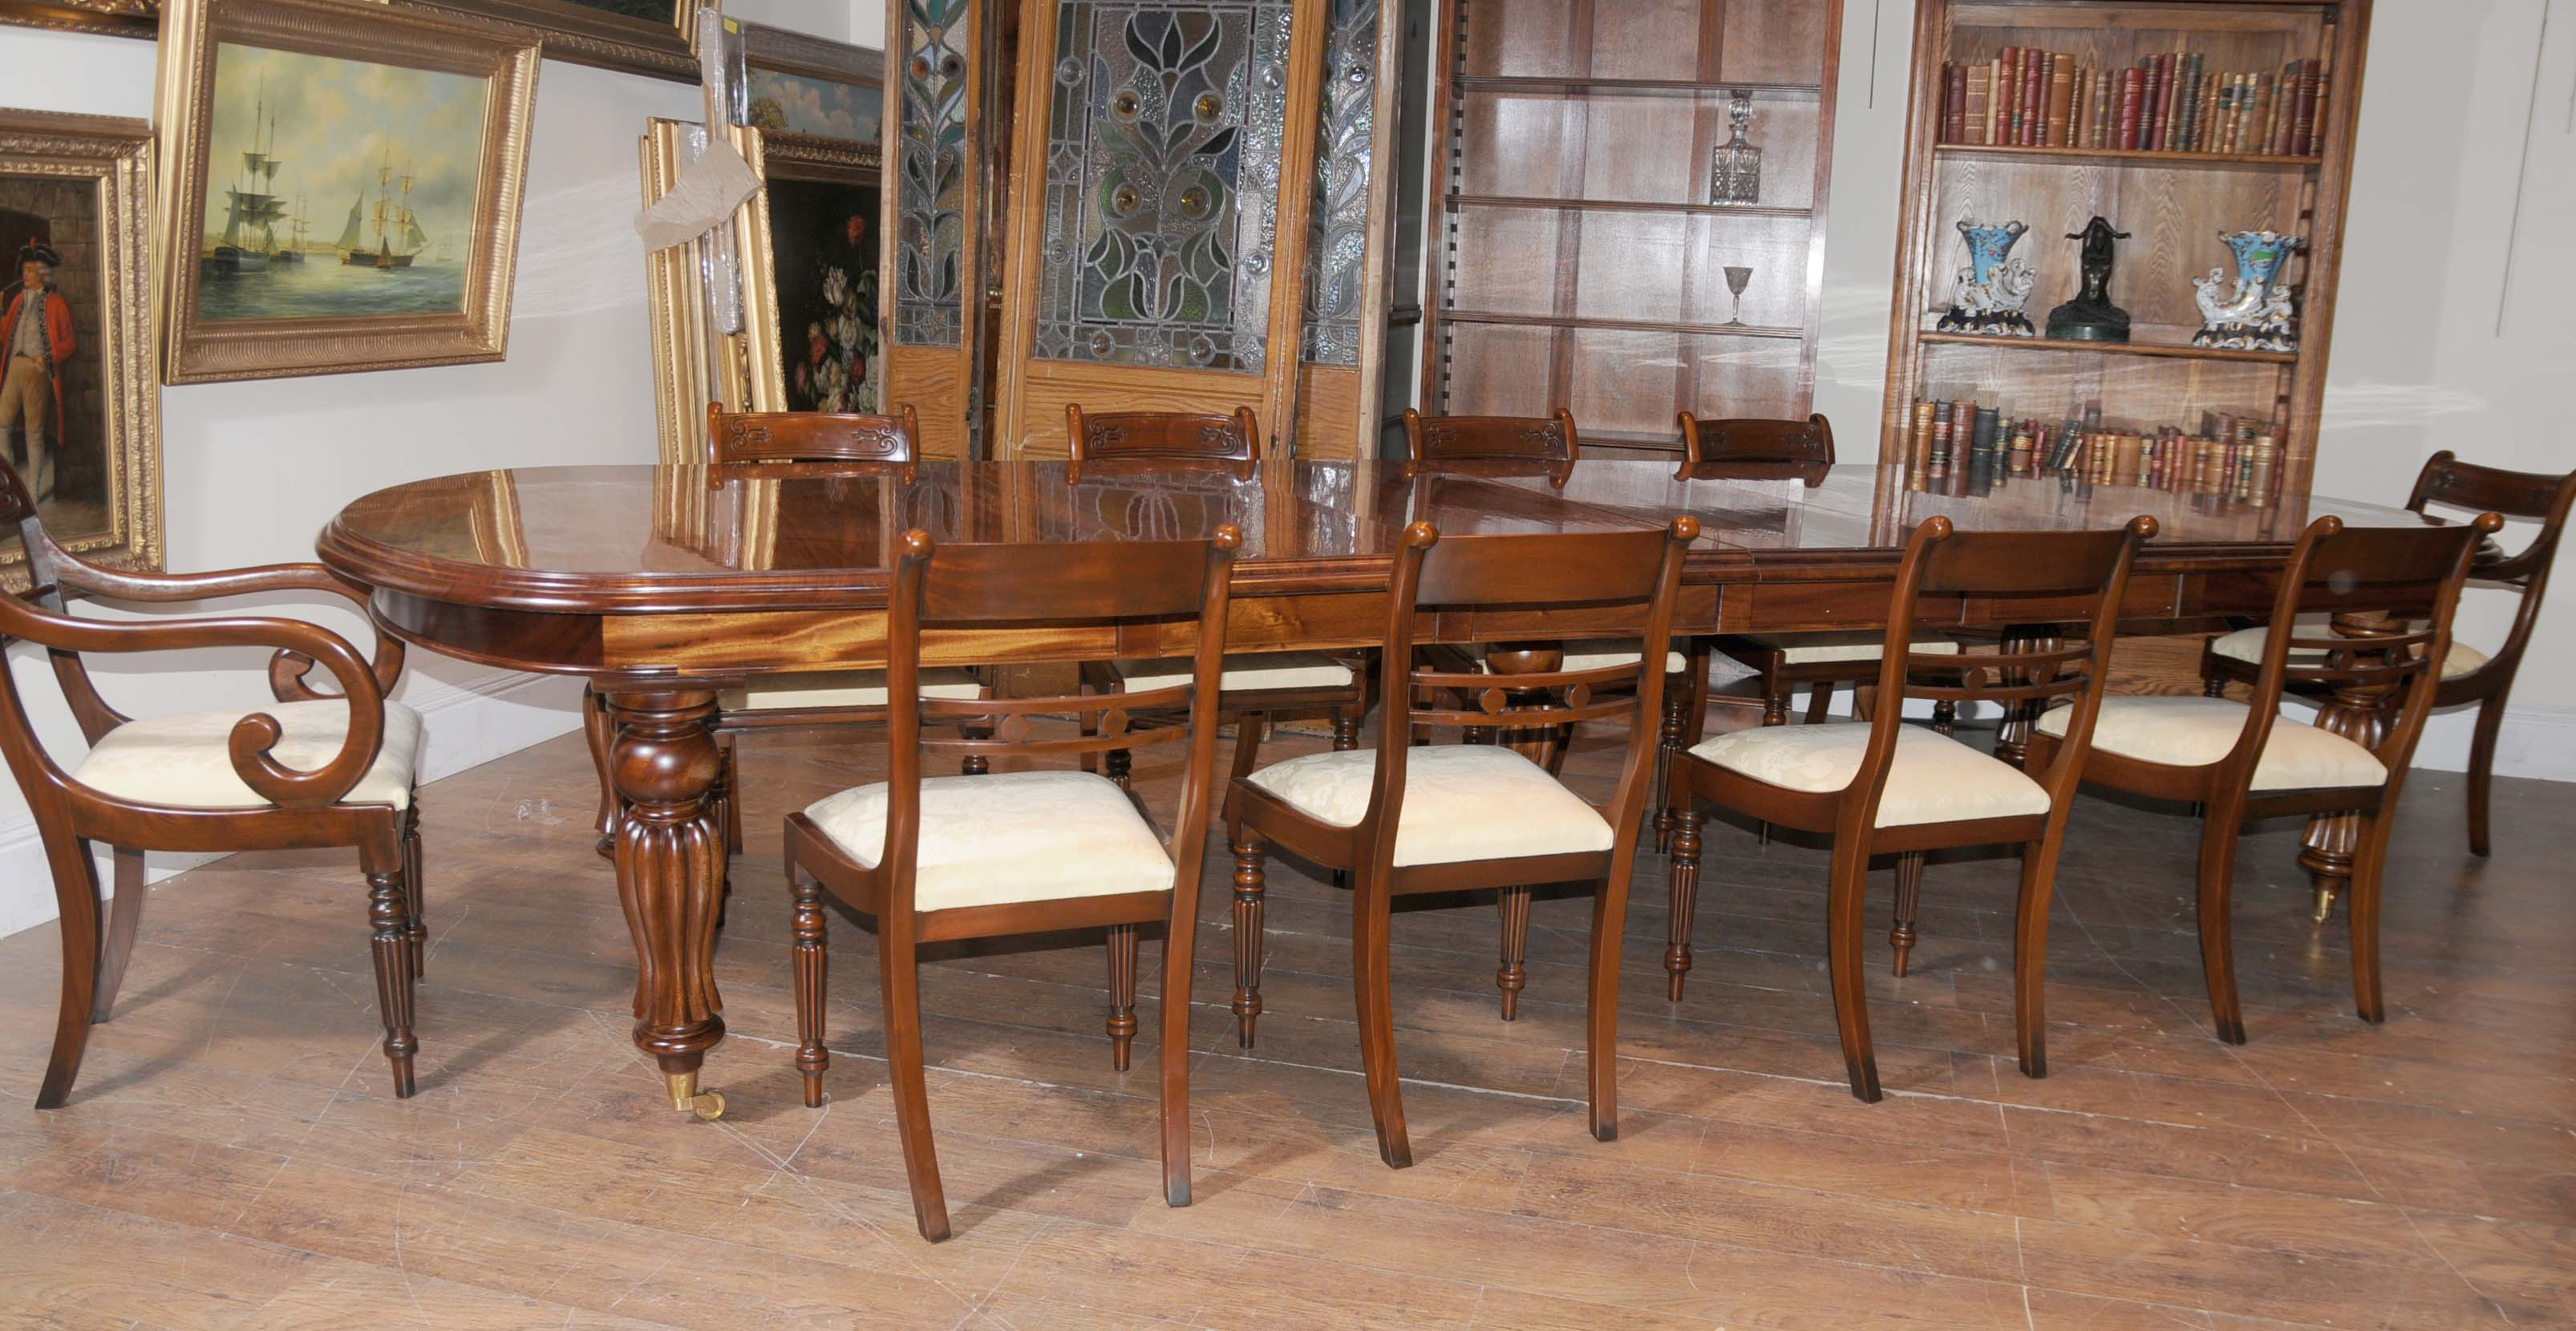 Antique dining rooms